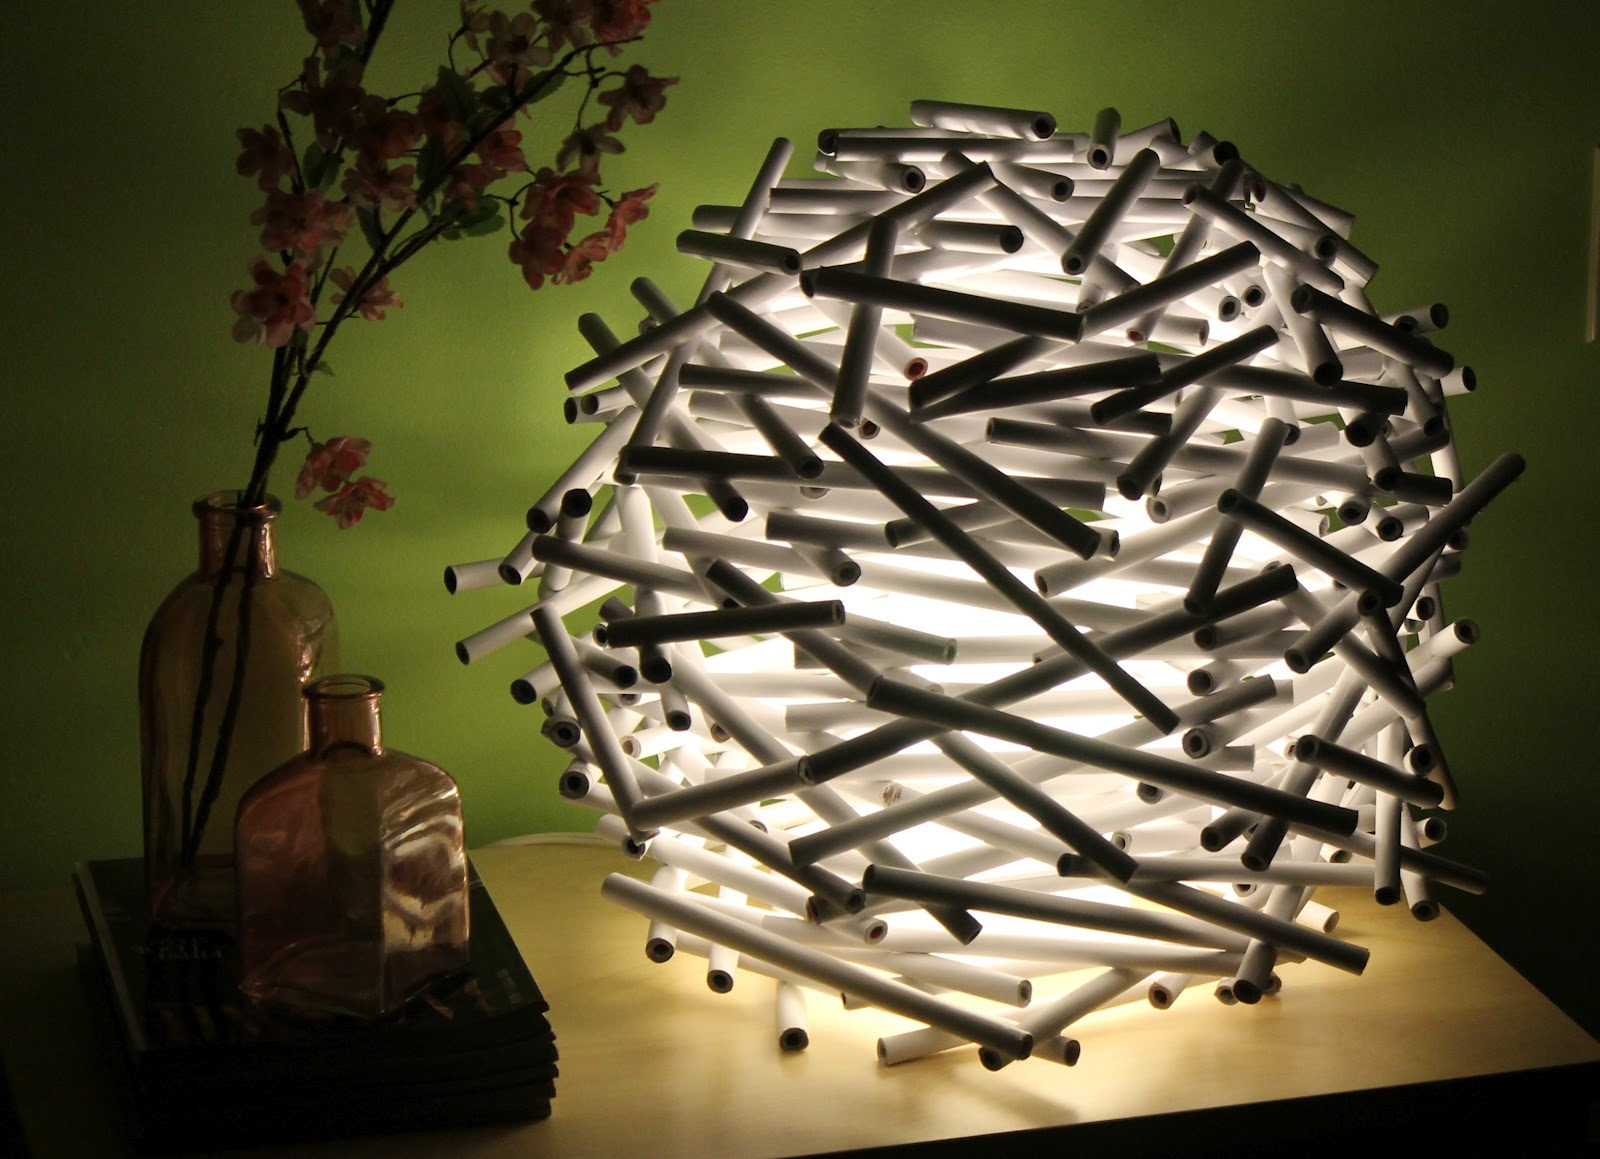 DIY} How To Make A Bird's Nest Lamp Shade Out of Newspaper | Catch My ...